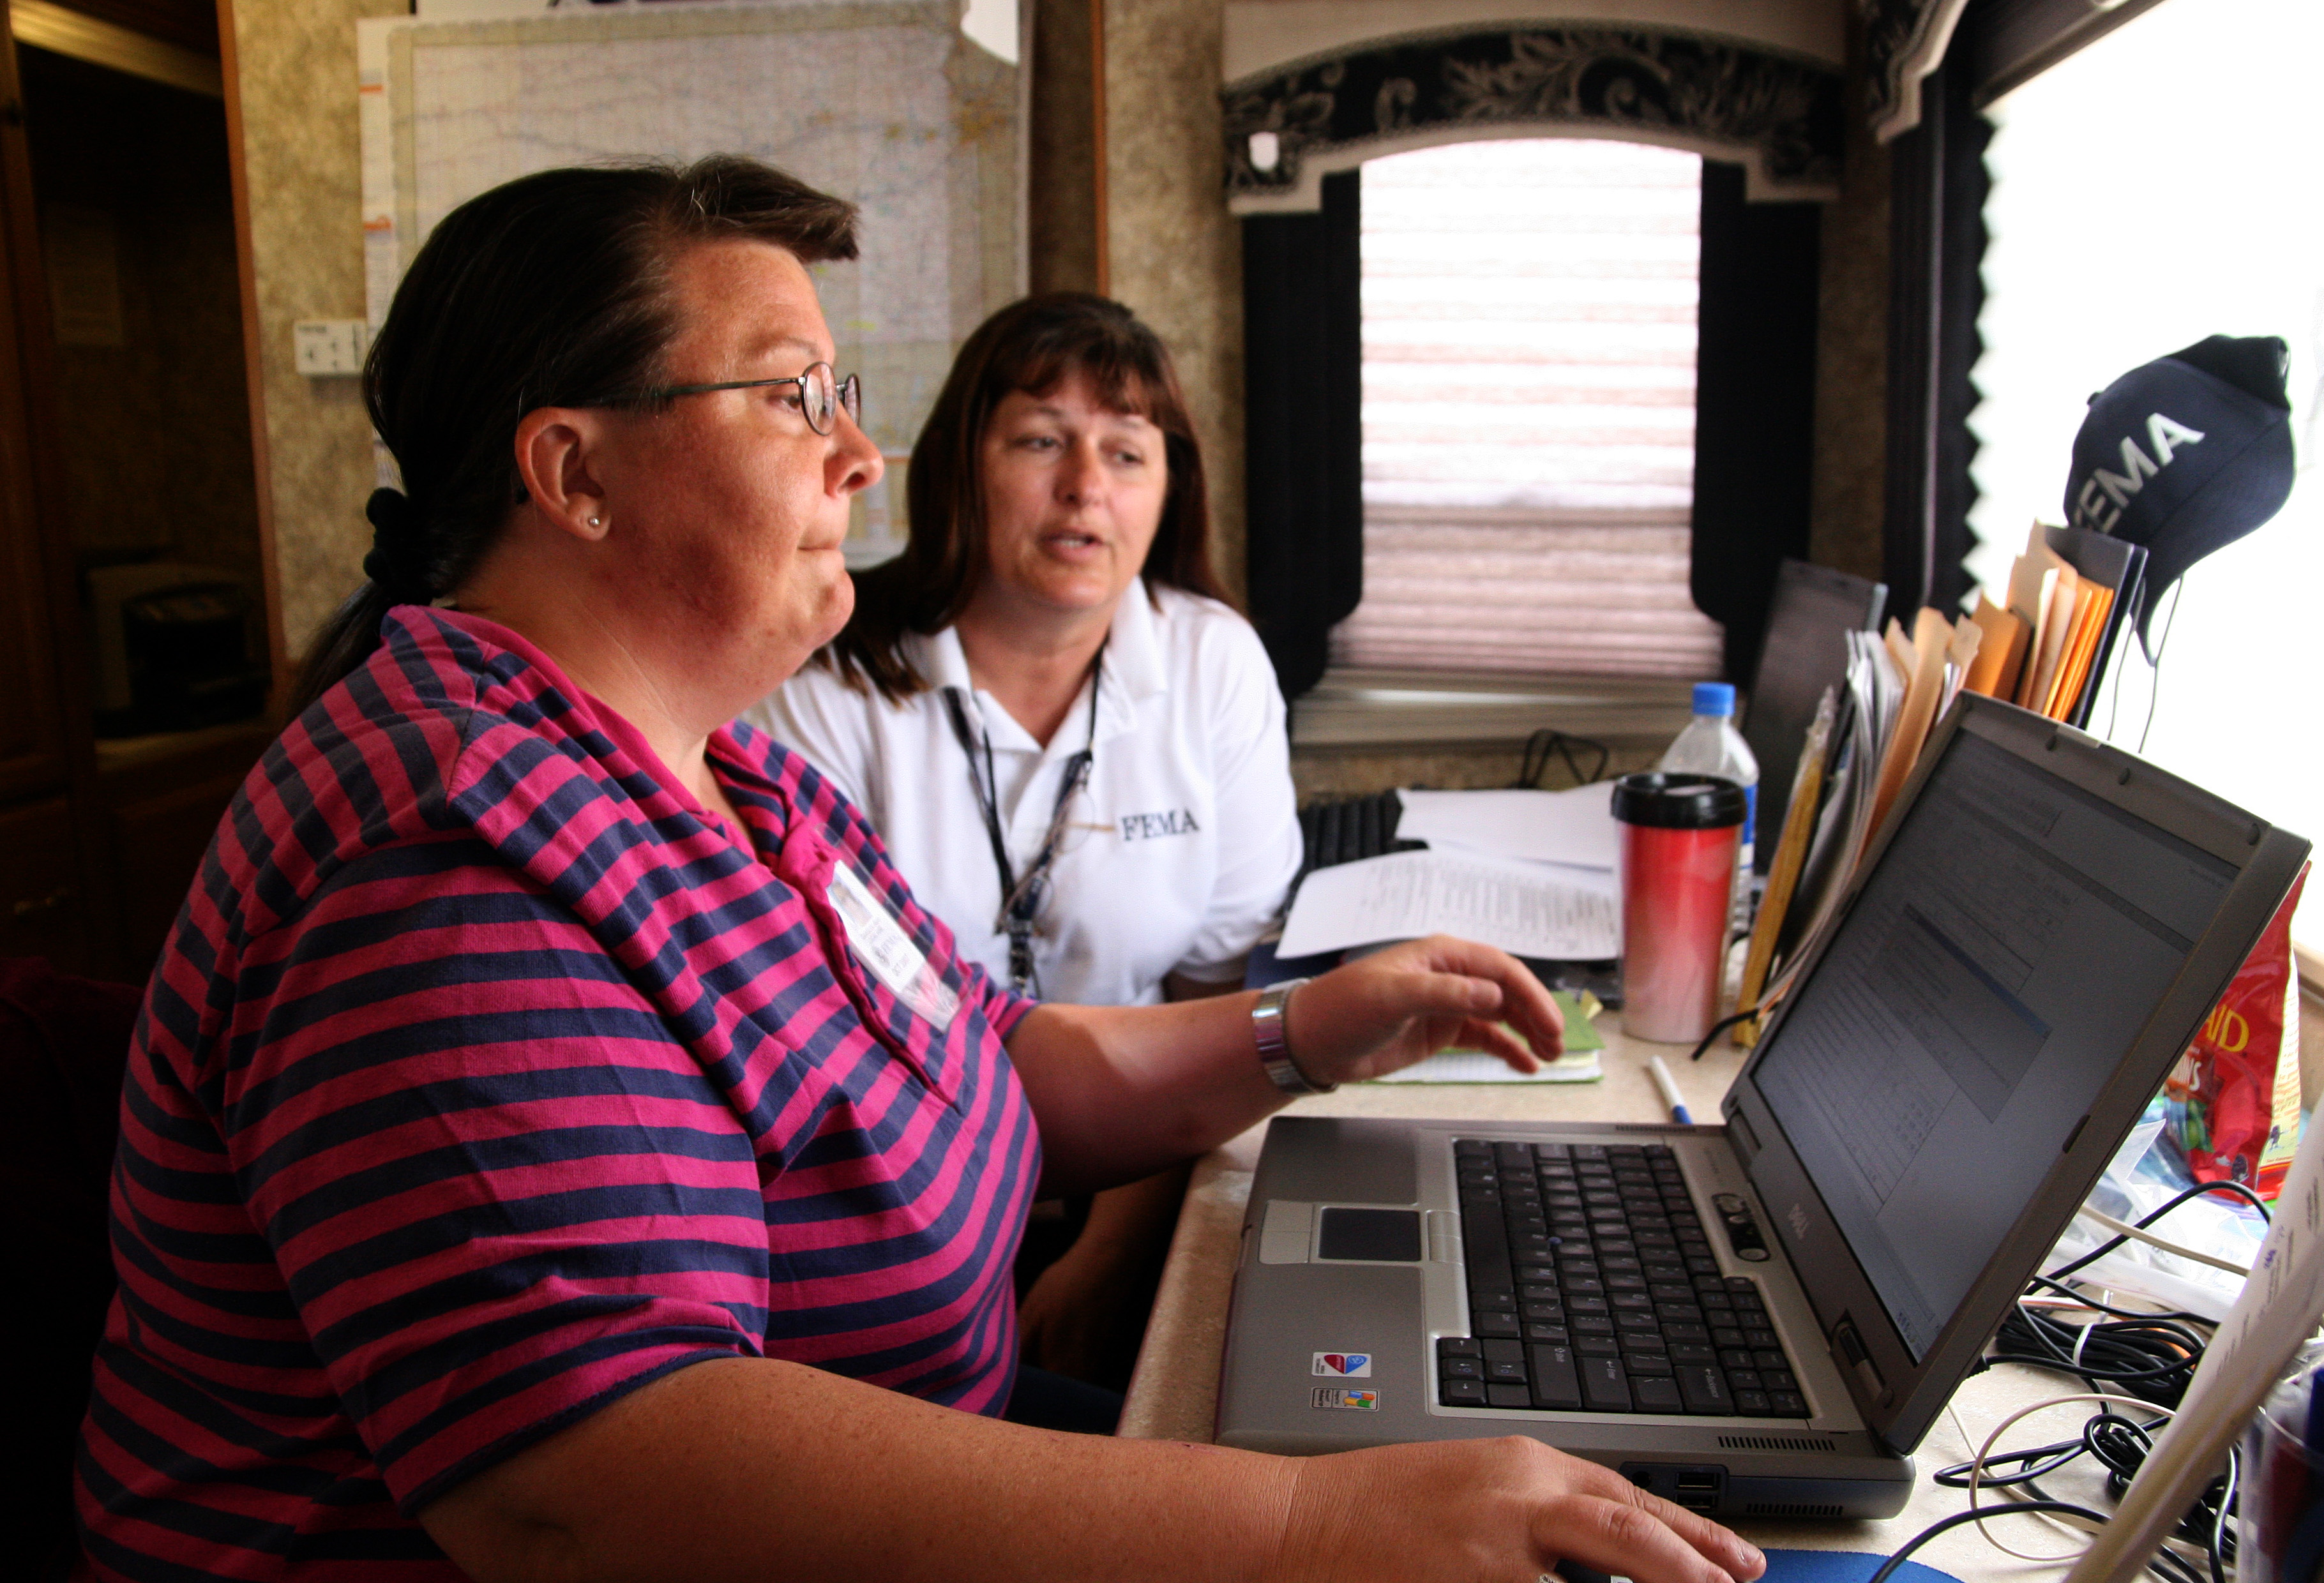 Greensburg, KS  May 30, 2007 - Greensburg resident Carolyn Irvin - FEMA's first local hire - learns how to log into the federal network by Cyndy Bourgeois, her supervisor.  Carolyn will be working in Human Resources.  Photo by Greg Henshall / FEMA